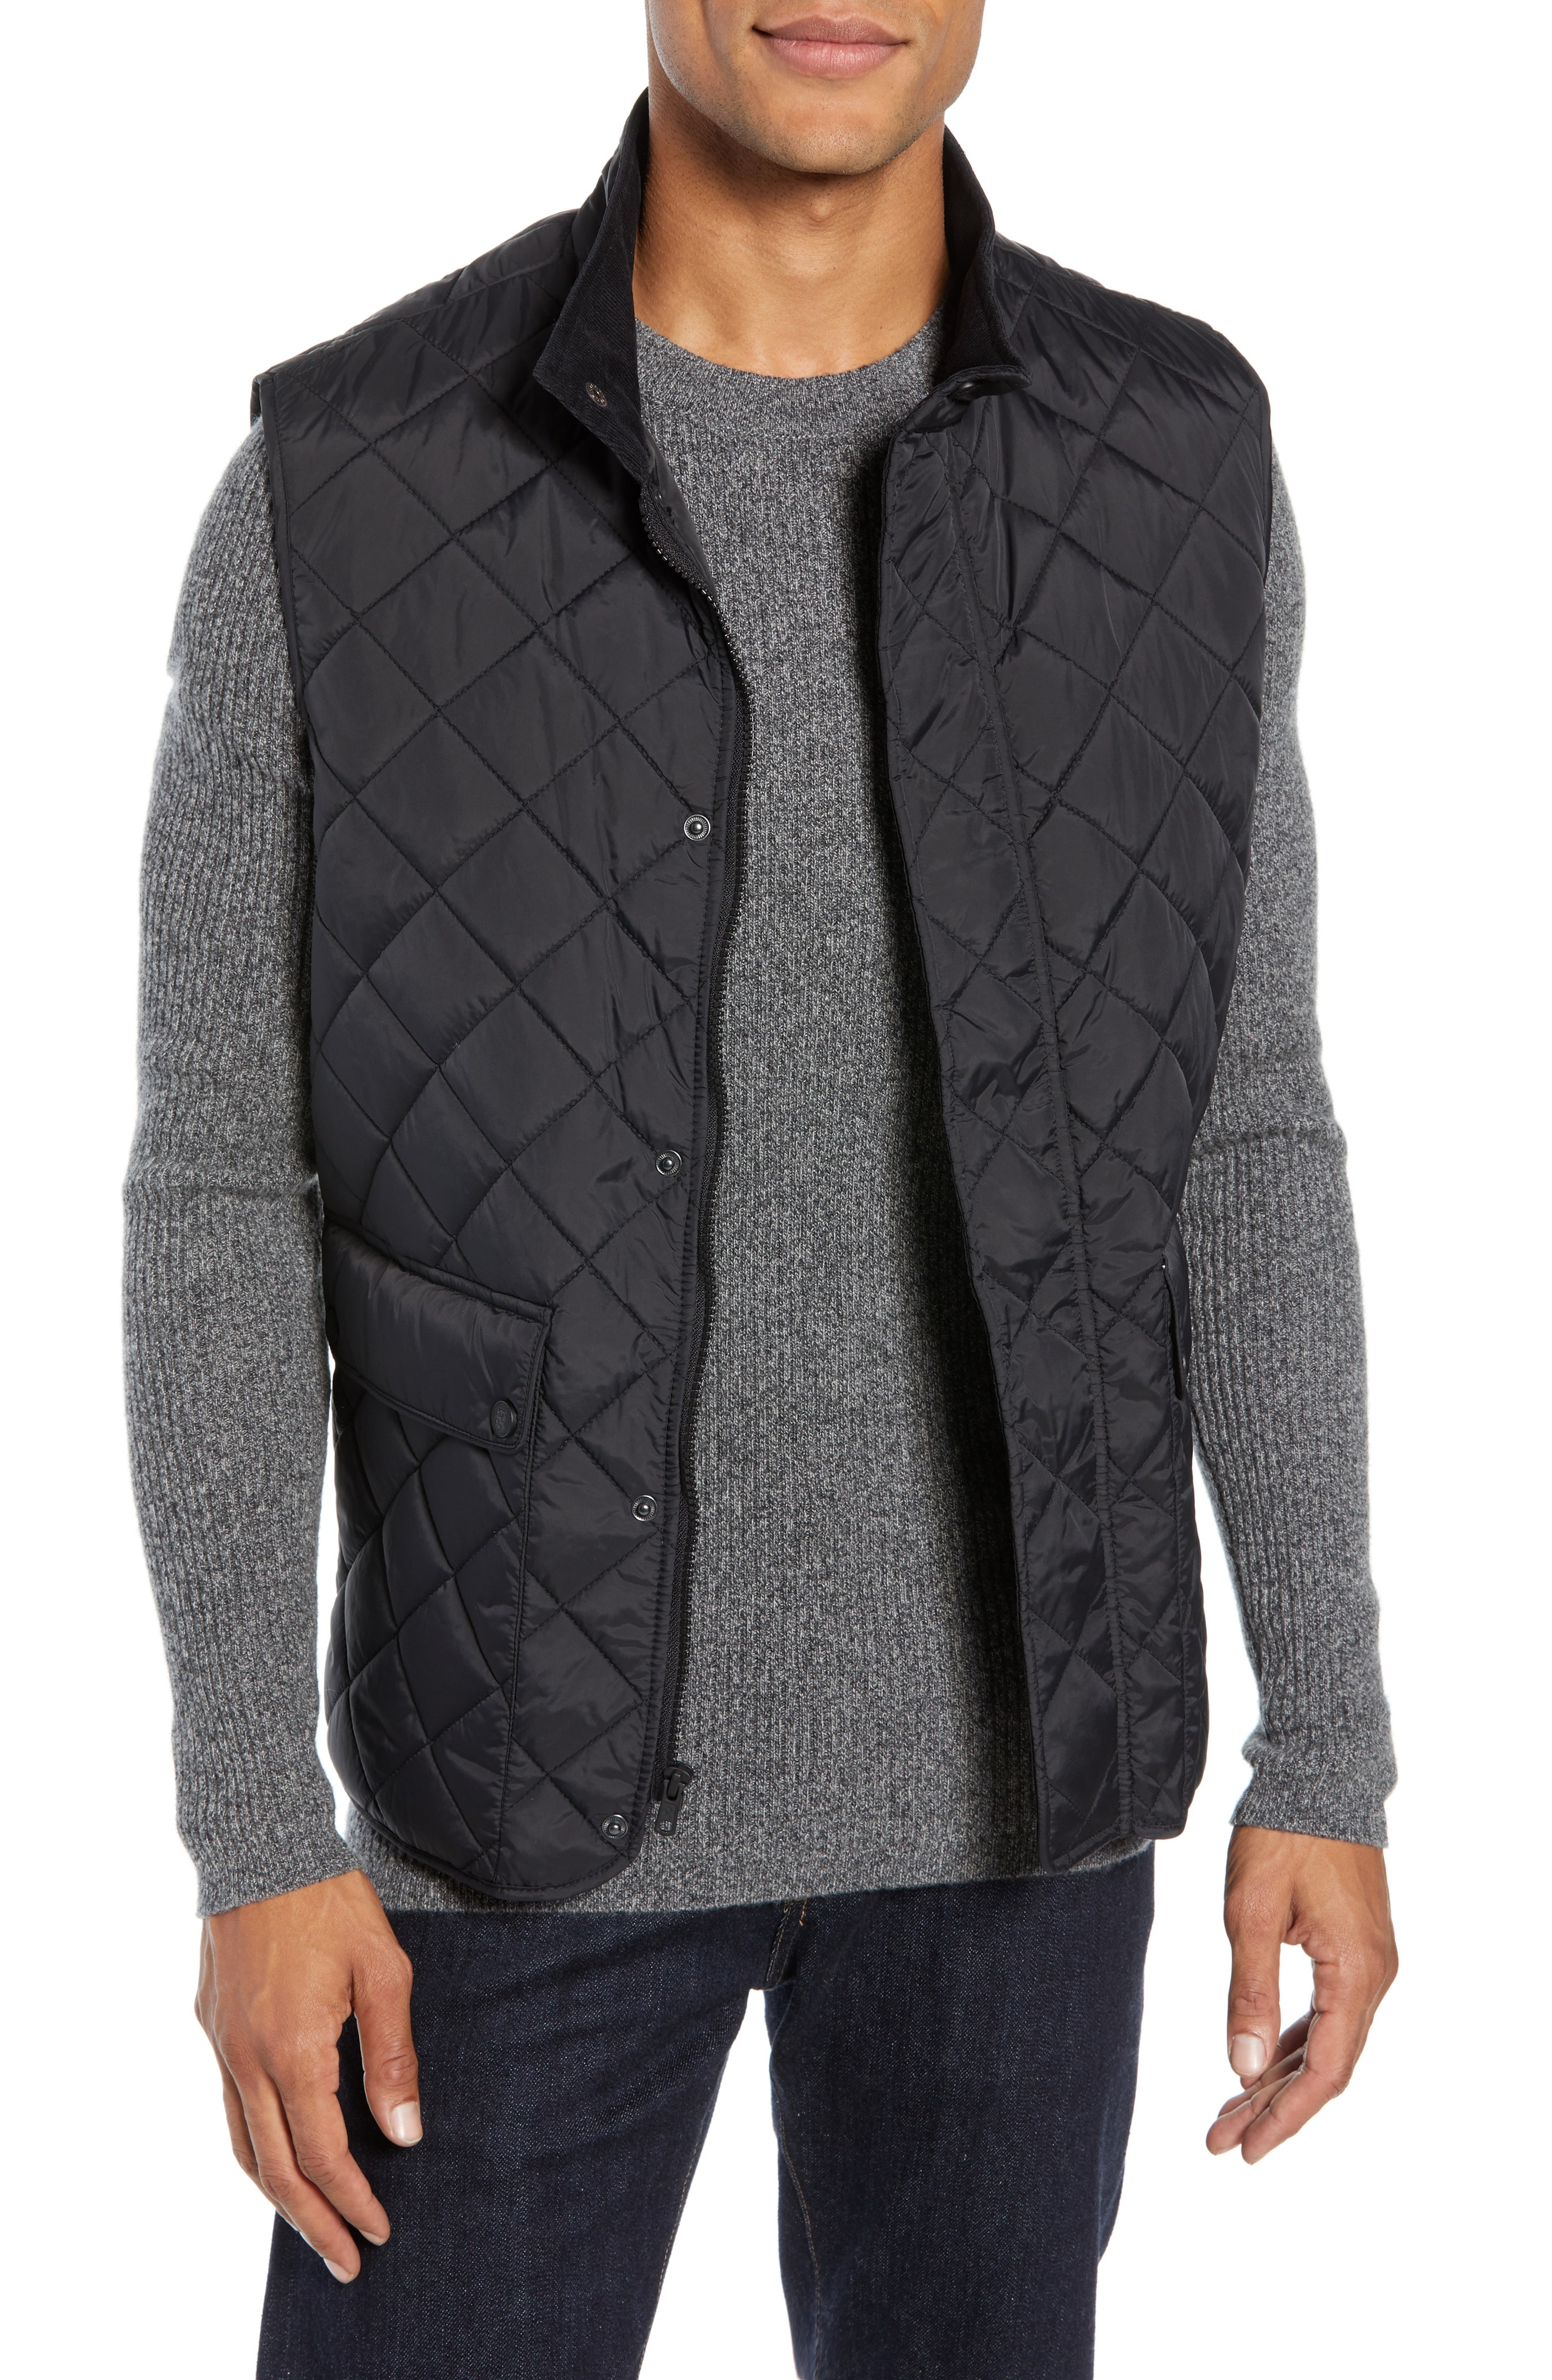 Men S Vince Camuto Diamond Quilted Vest Size Small